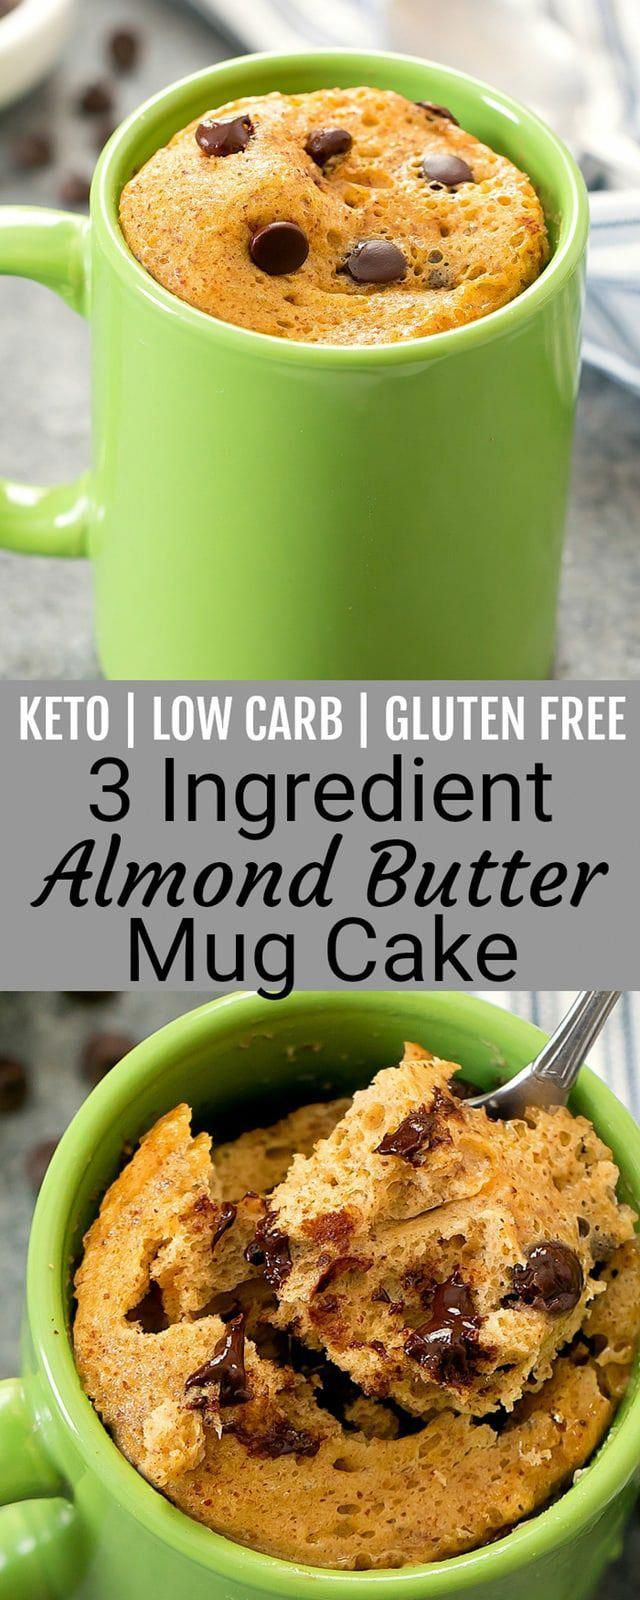 3 Ingredient Keto Almond Butter Mug Cake. An easy single serving dessert that is low carb, gluten free and keto friendly. It cooks in the microwave and is ready in about 5 minutes. #LowCarbNoCarbRecipes #proteinmugcakes